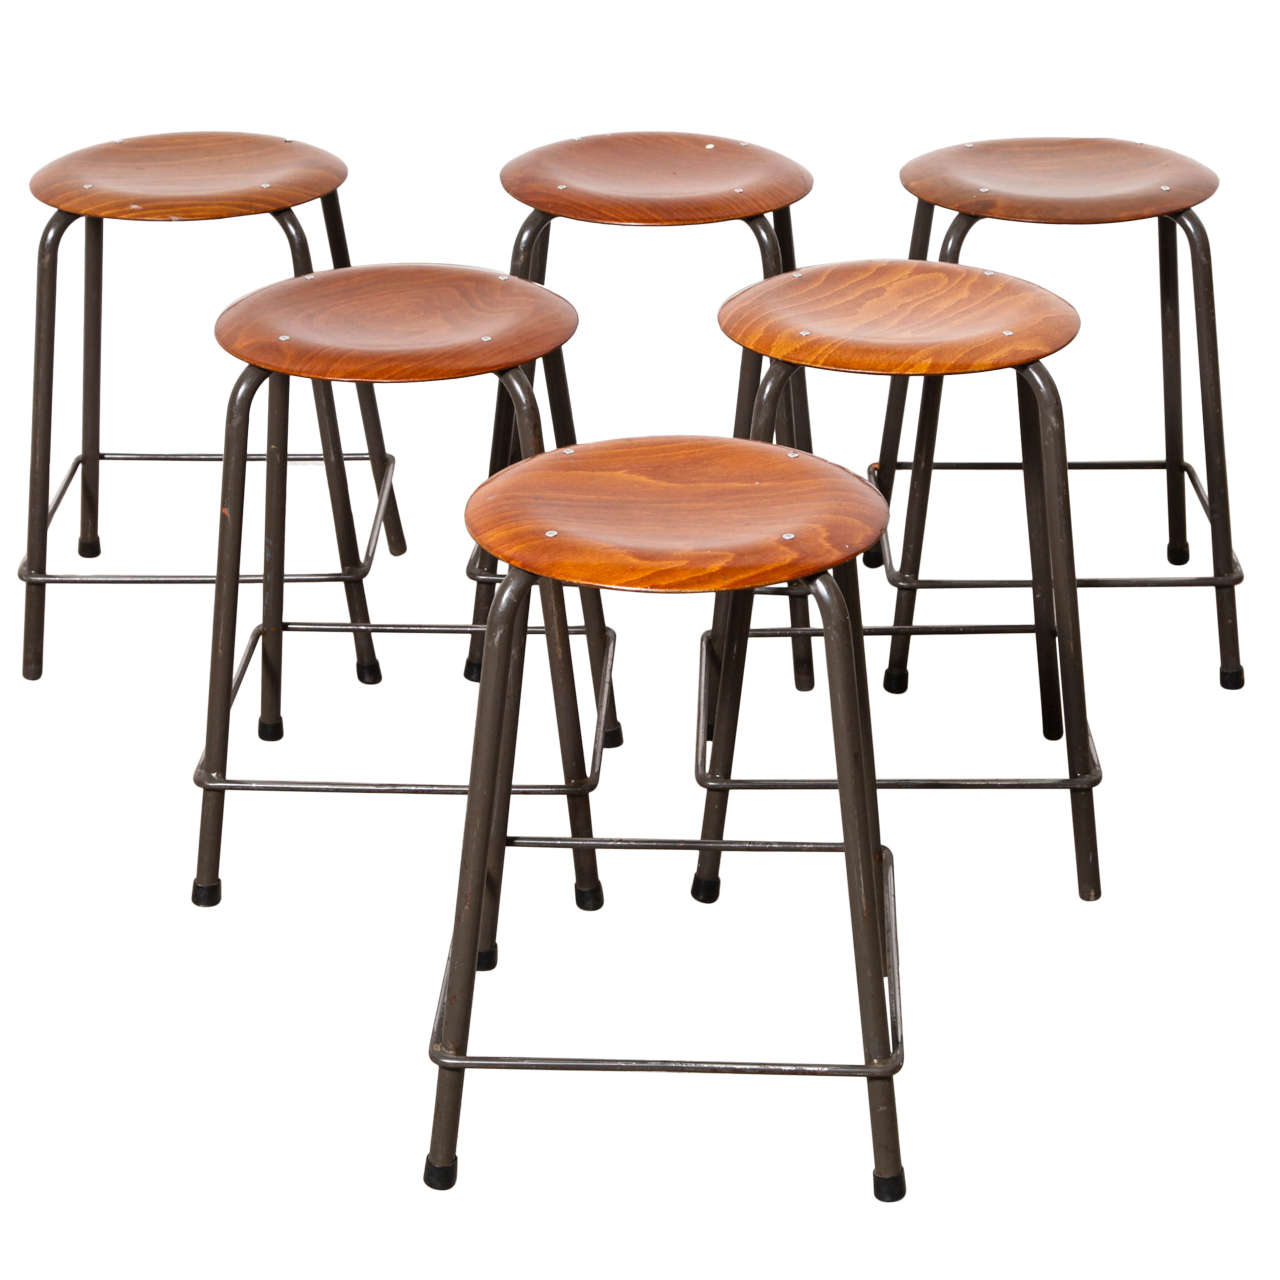 industrial stools from marko at 1stdibs